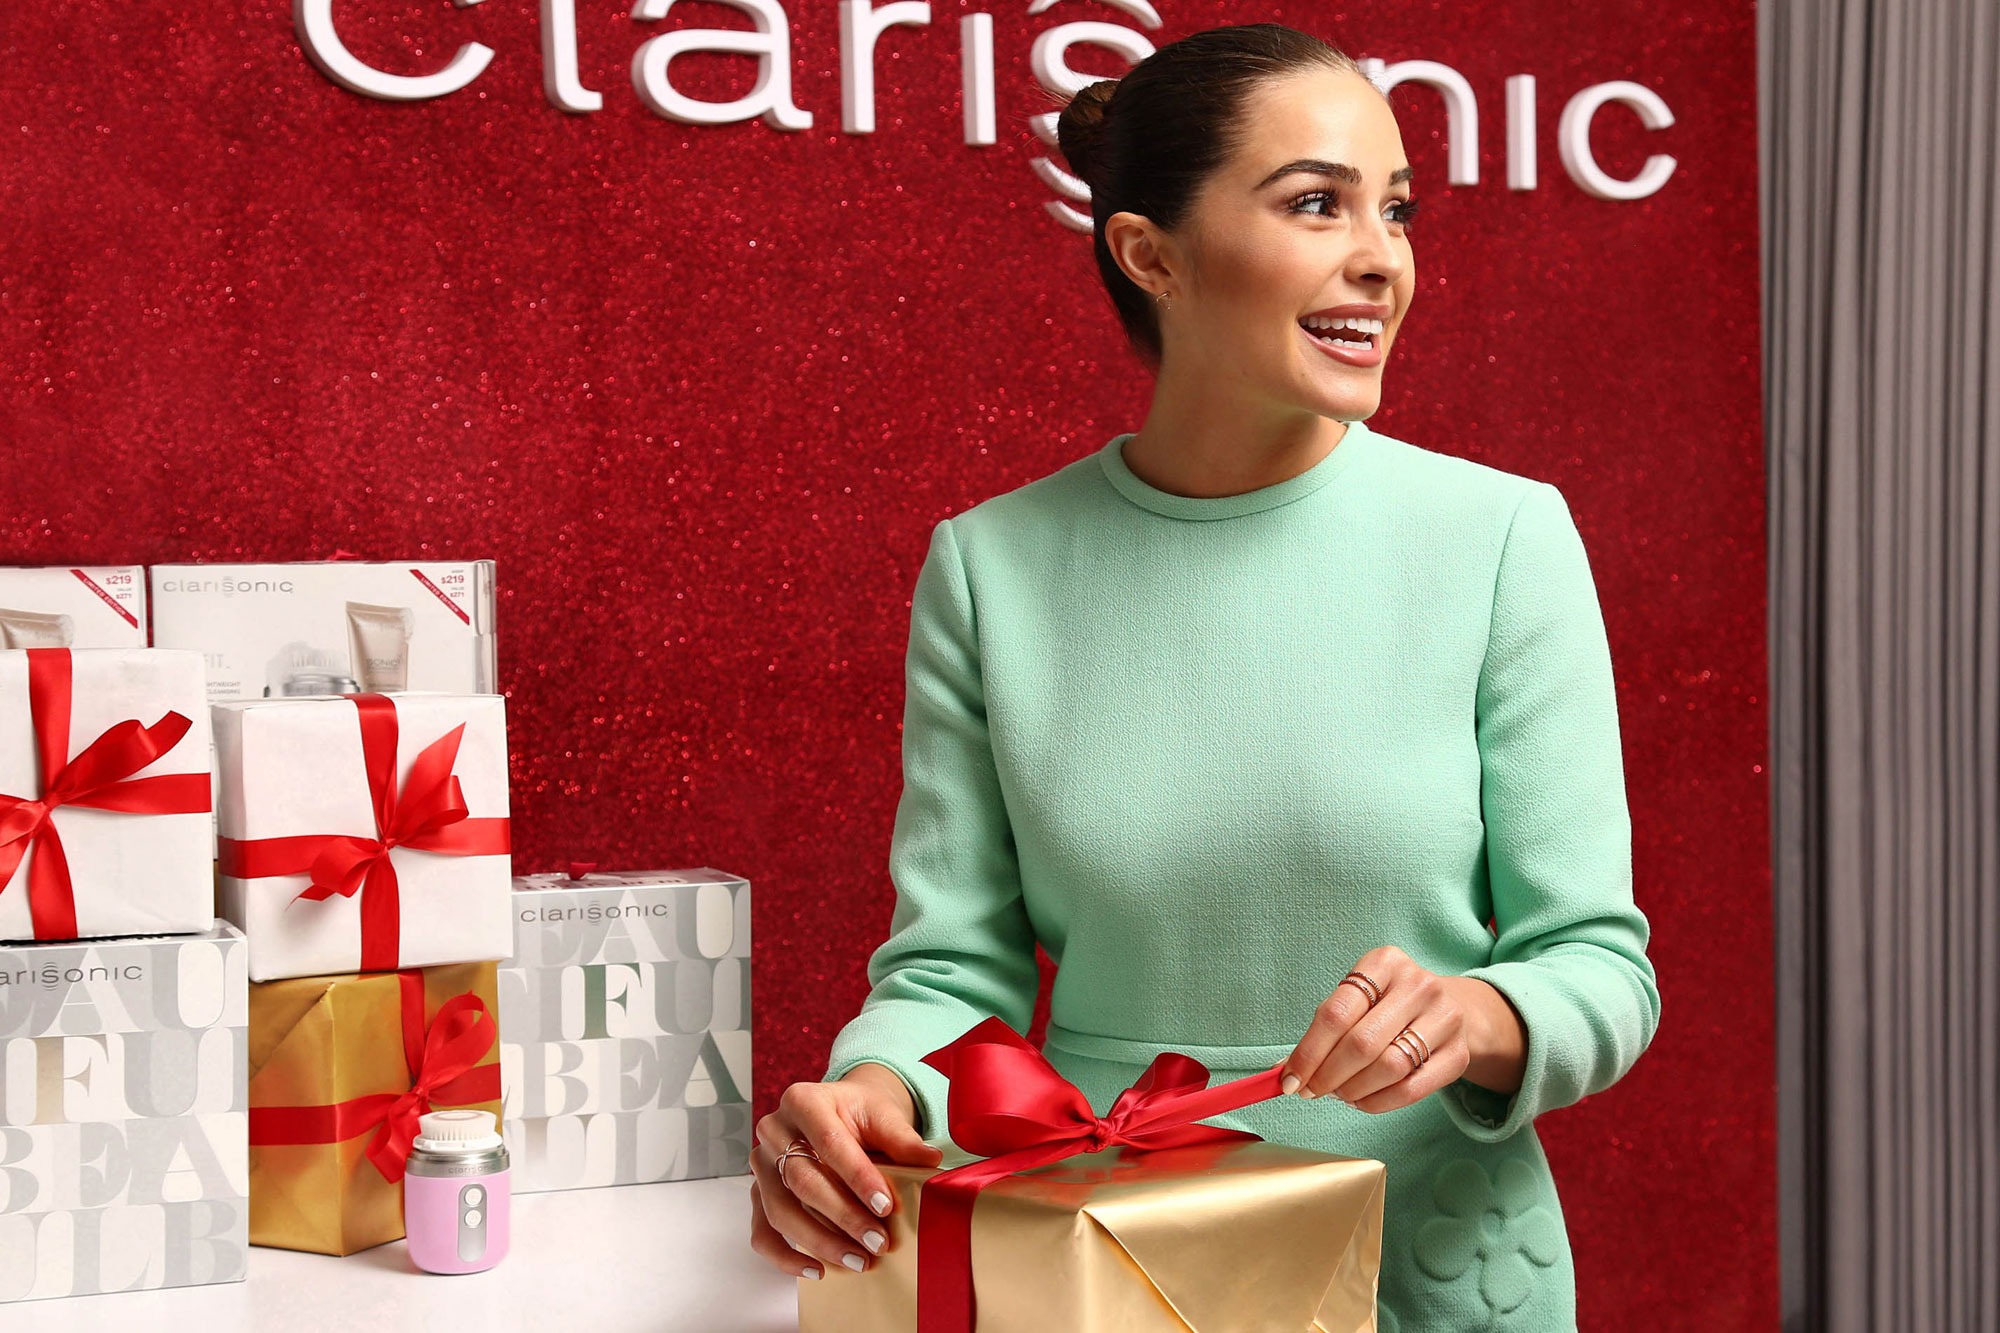 Olivia Culpo Shops at the Clarisonic Mia FIT Holiday Event